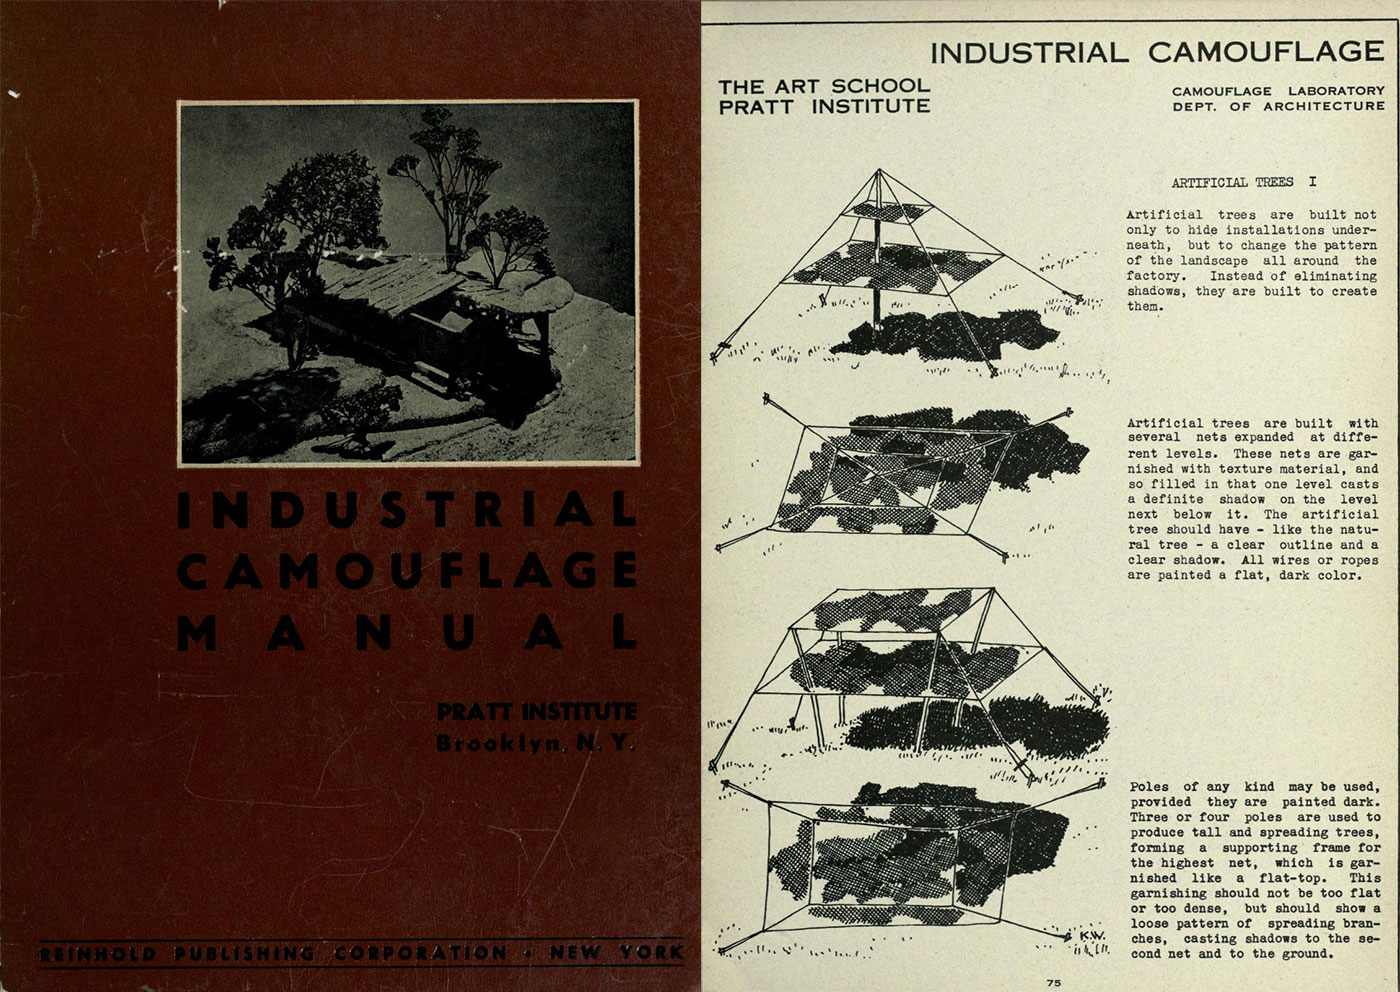 Cover of the Industrial Camouflage Manual published by Pratt Institute in 1942; Research on making fake trees from nets (via Internet Archive)